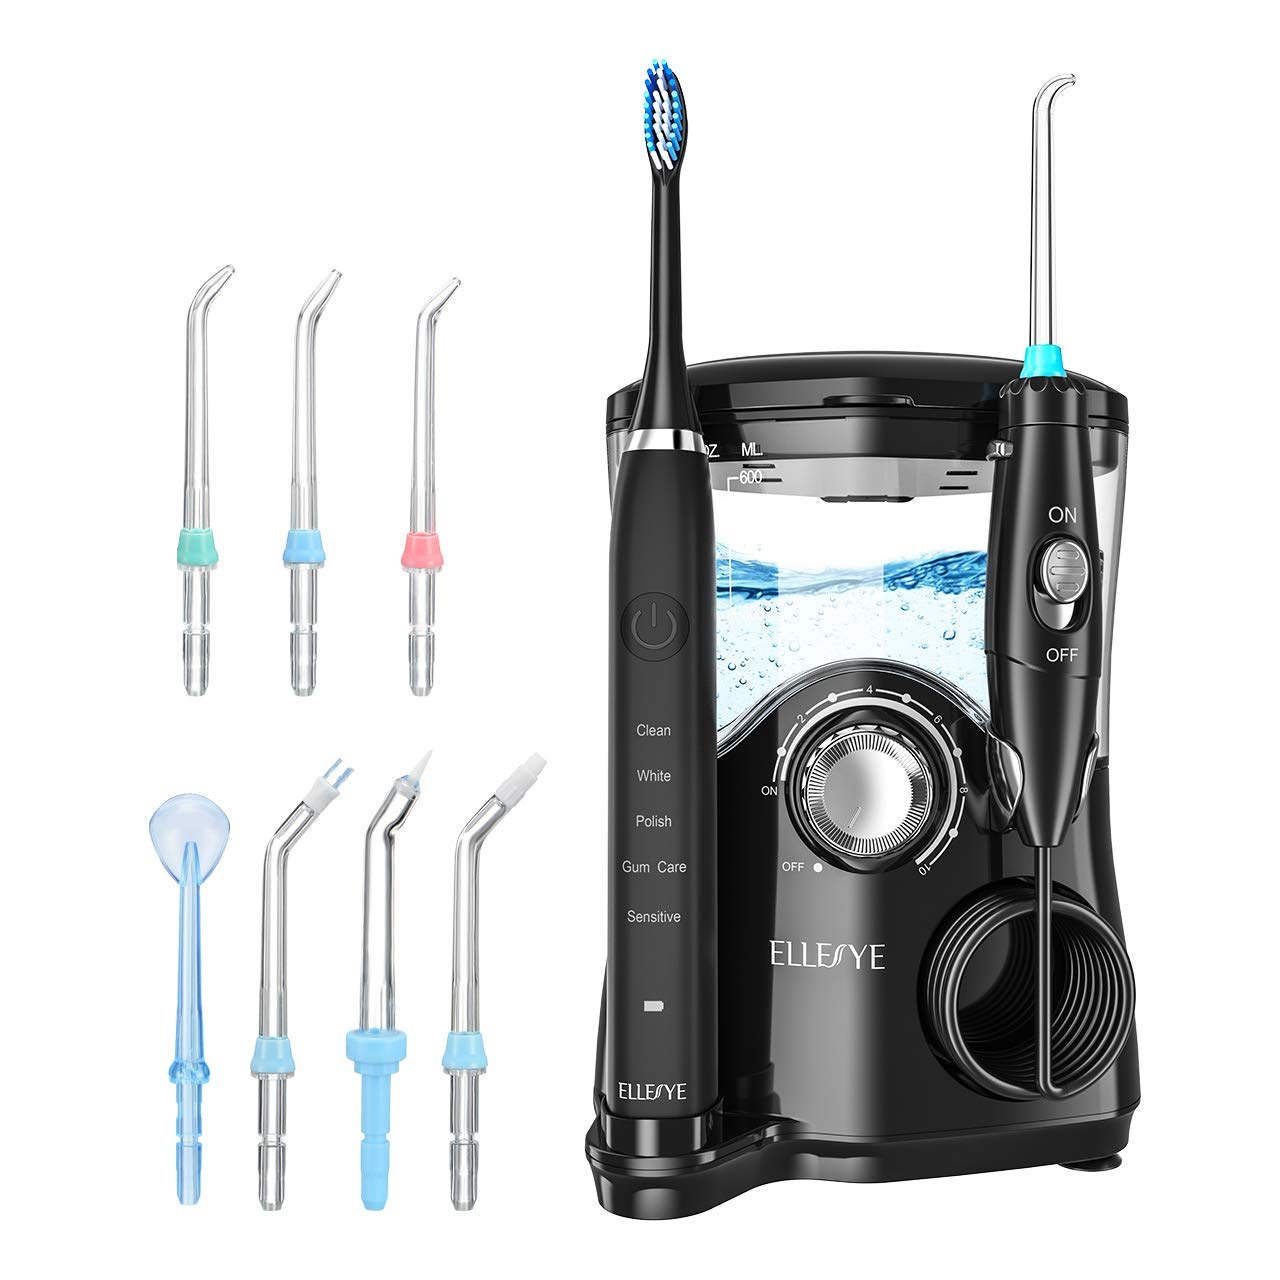 Water Flosser, ELLESYE 600ml Oral Irrigator Electric Toothbrush with 7 Multifunctional Jet Tips, 3 Min Timer, Dental Water Flosser for Braces Care Teeth Cleaning, Quiet Design Family